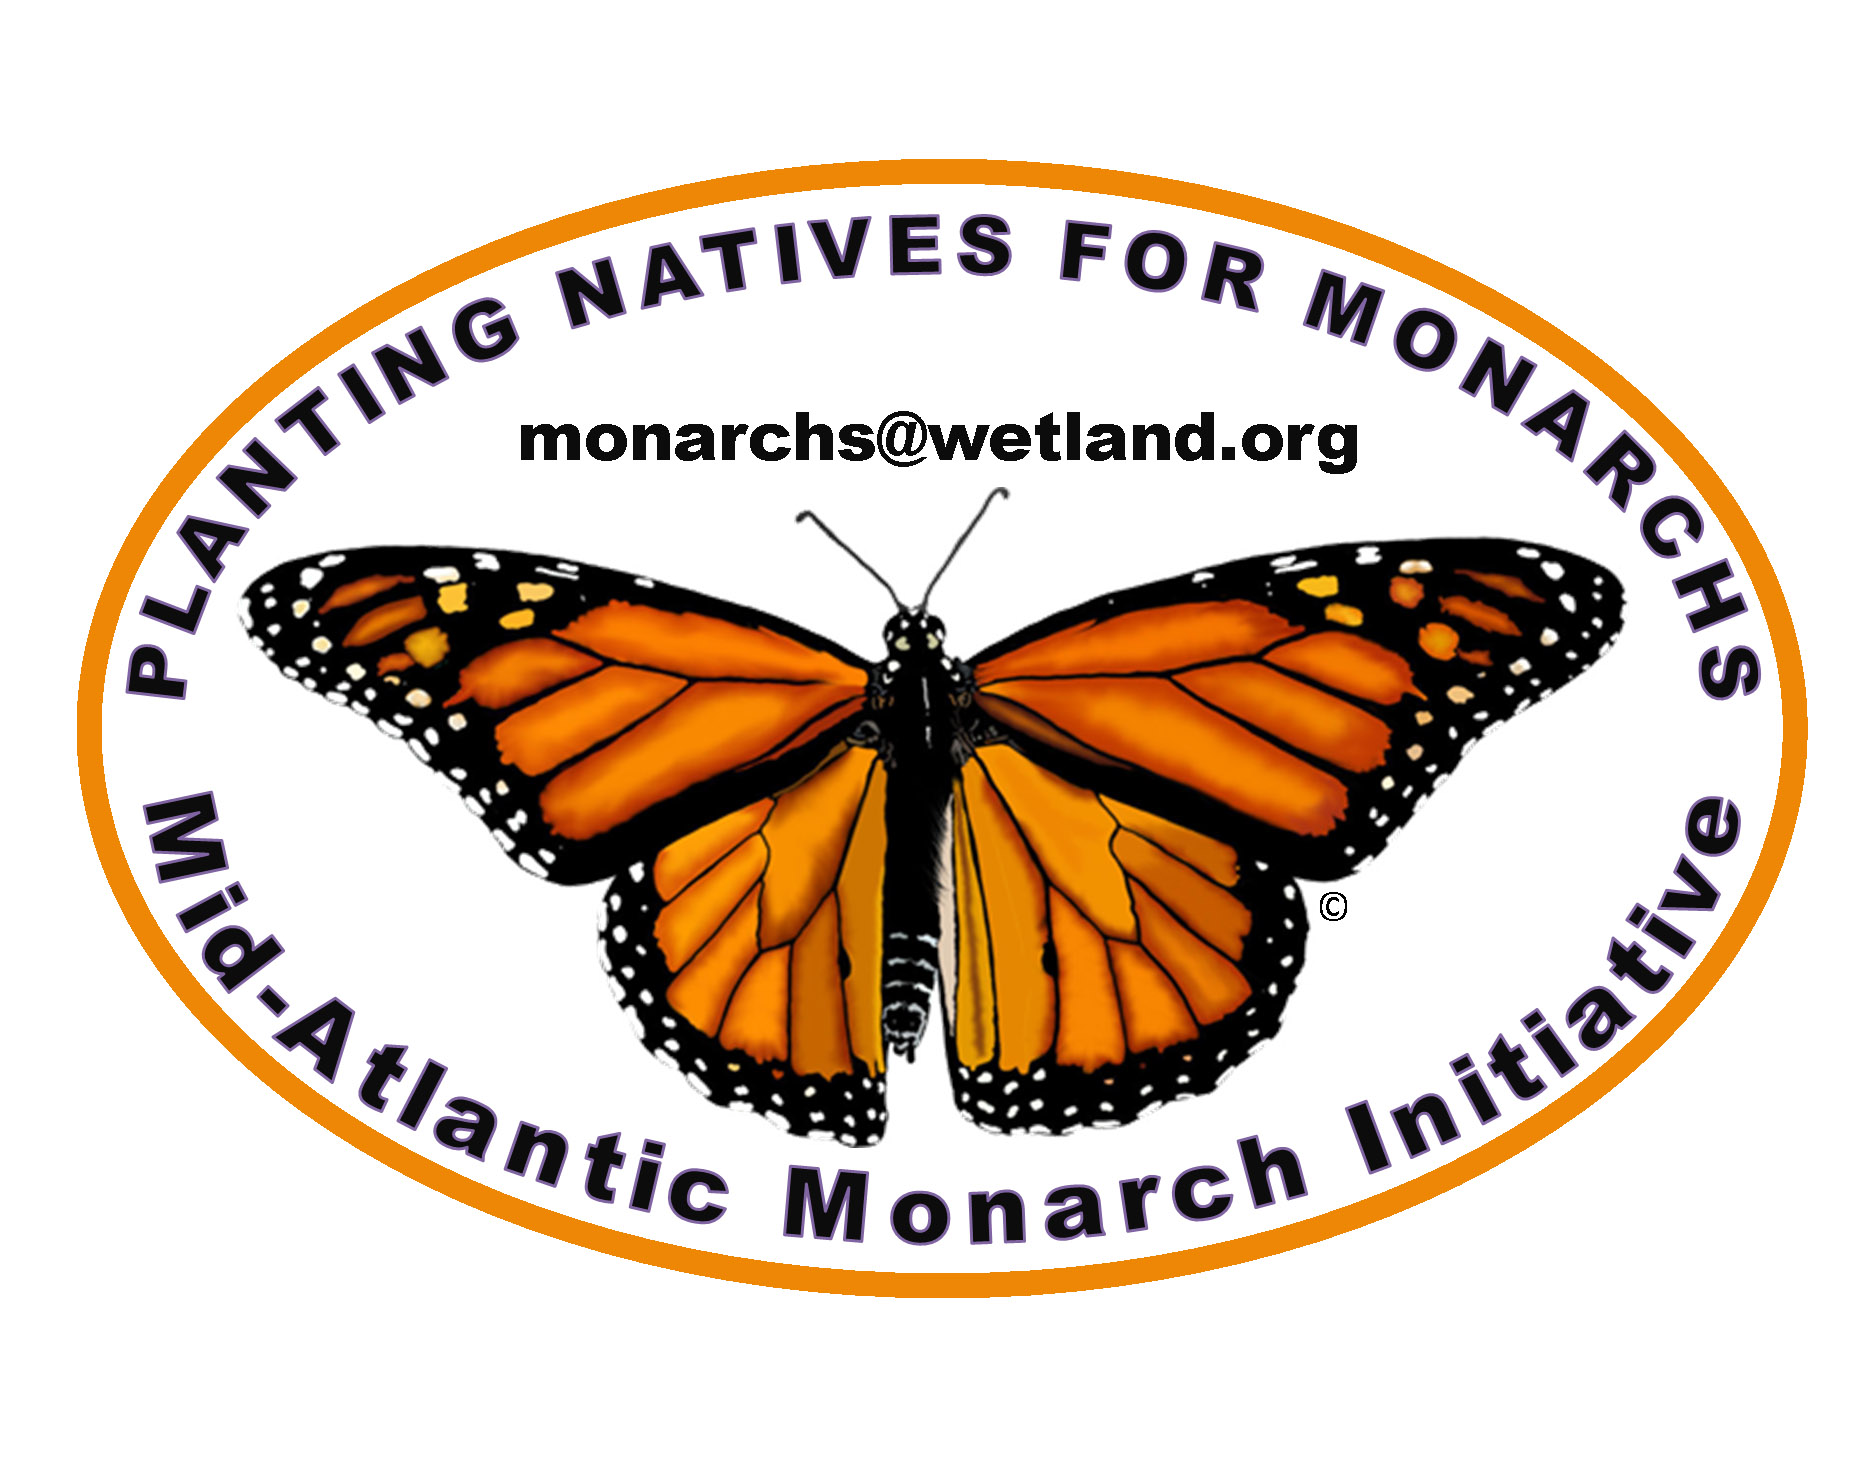 Mid-Atlantic Monarch Initiative (MAMI)